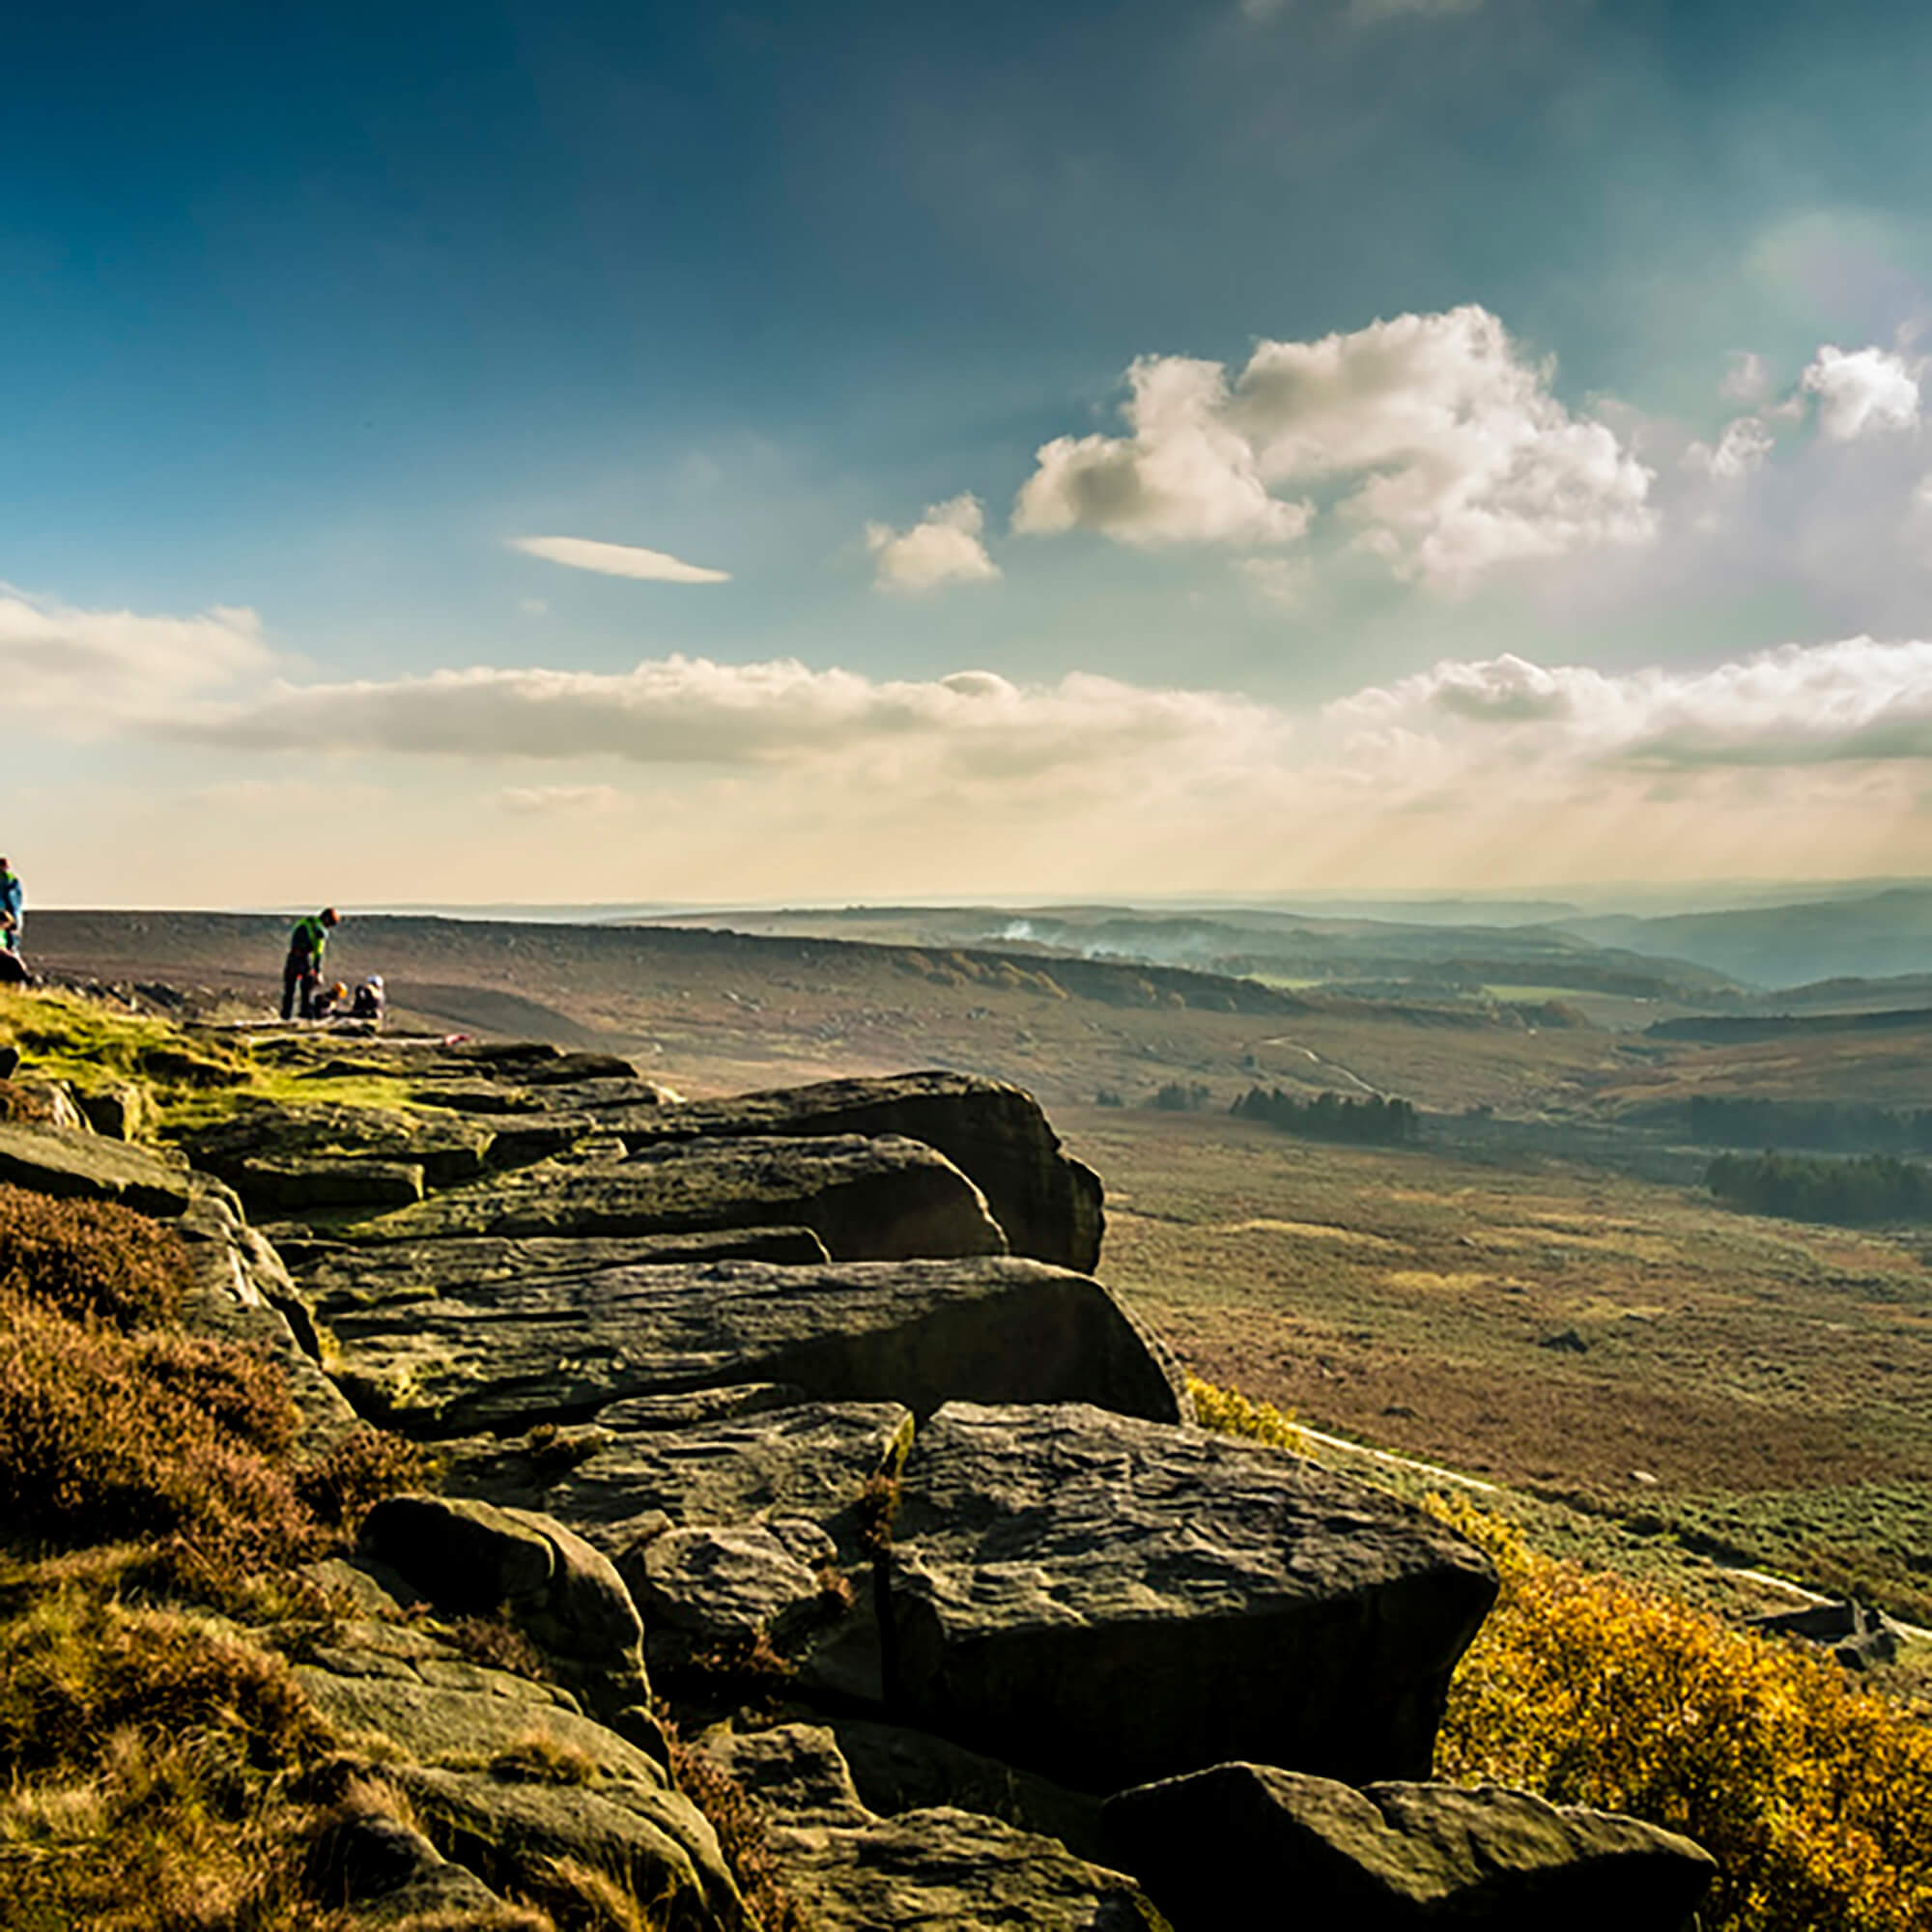 View of landscape at Burbage, with rocks in foreground